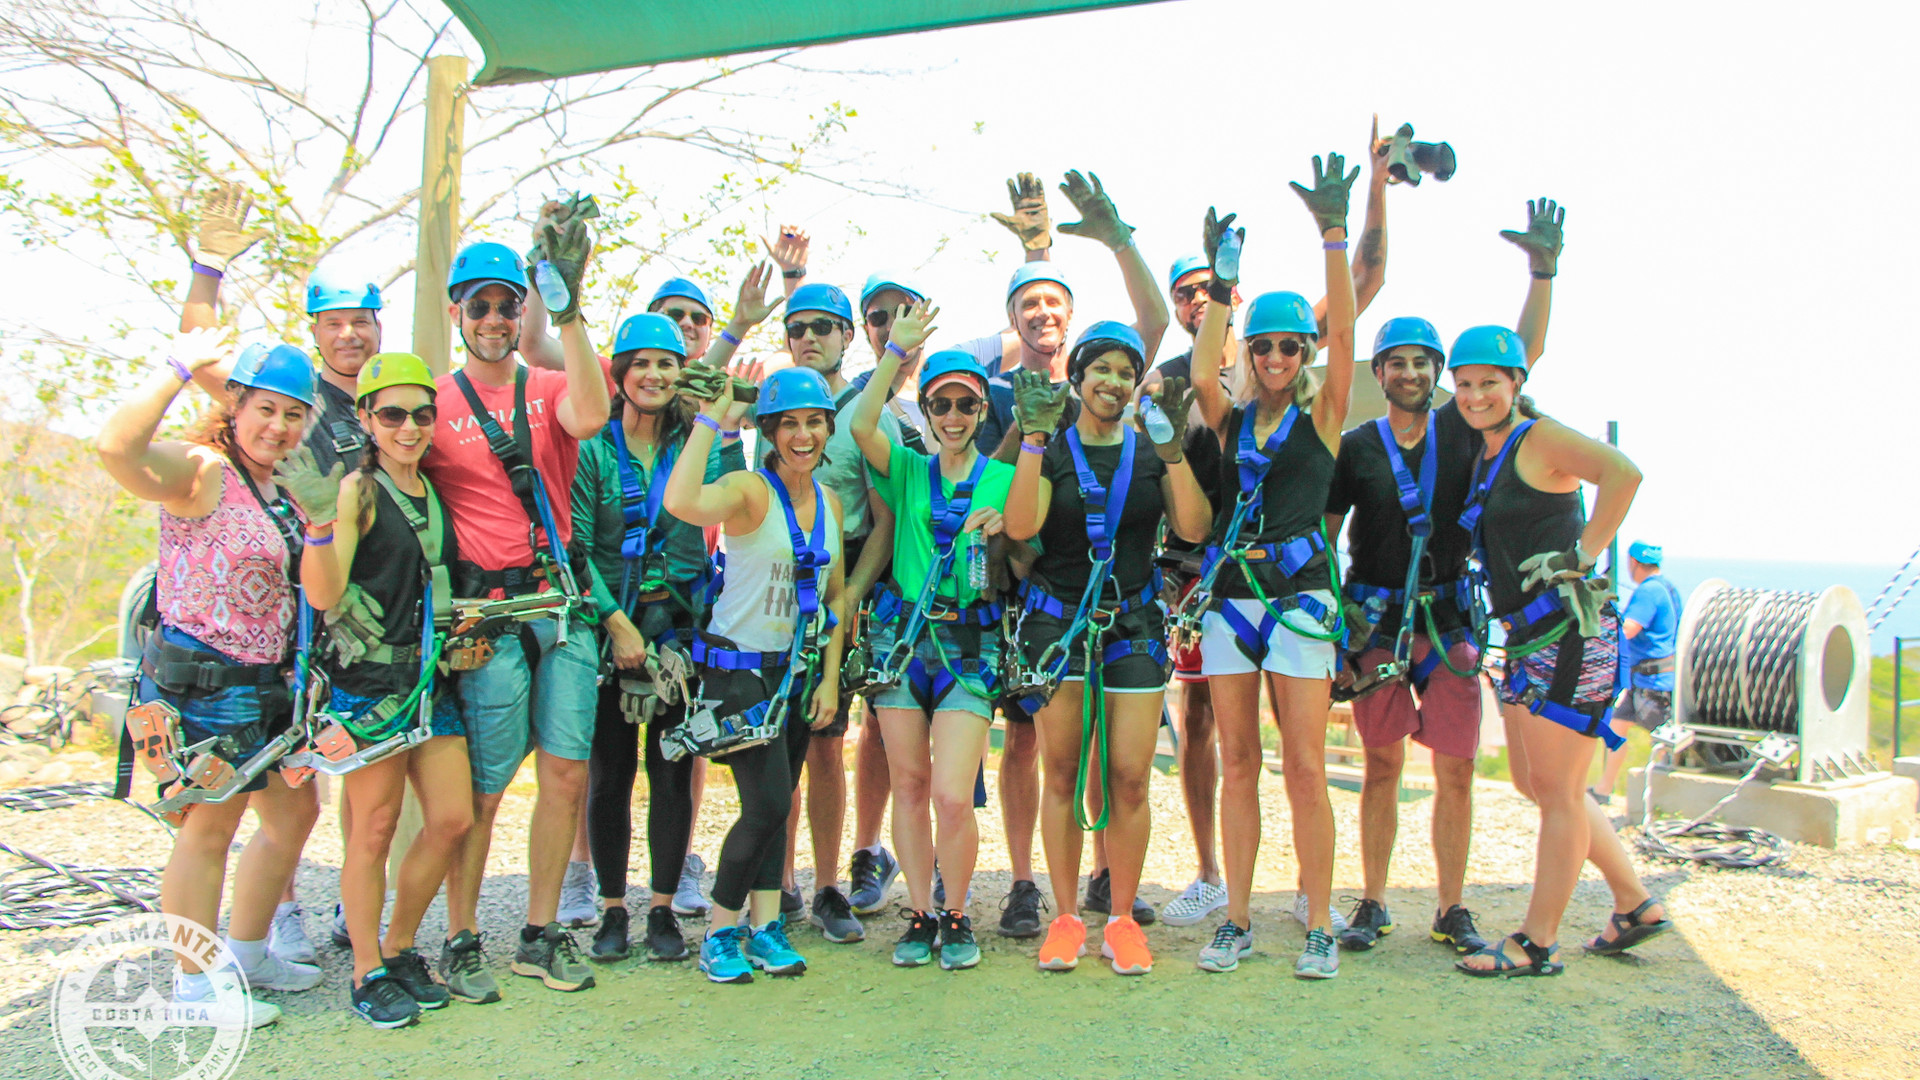 Group photo of incentive trip winners getting ready to zipline in Costa Rica